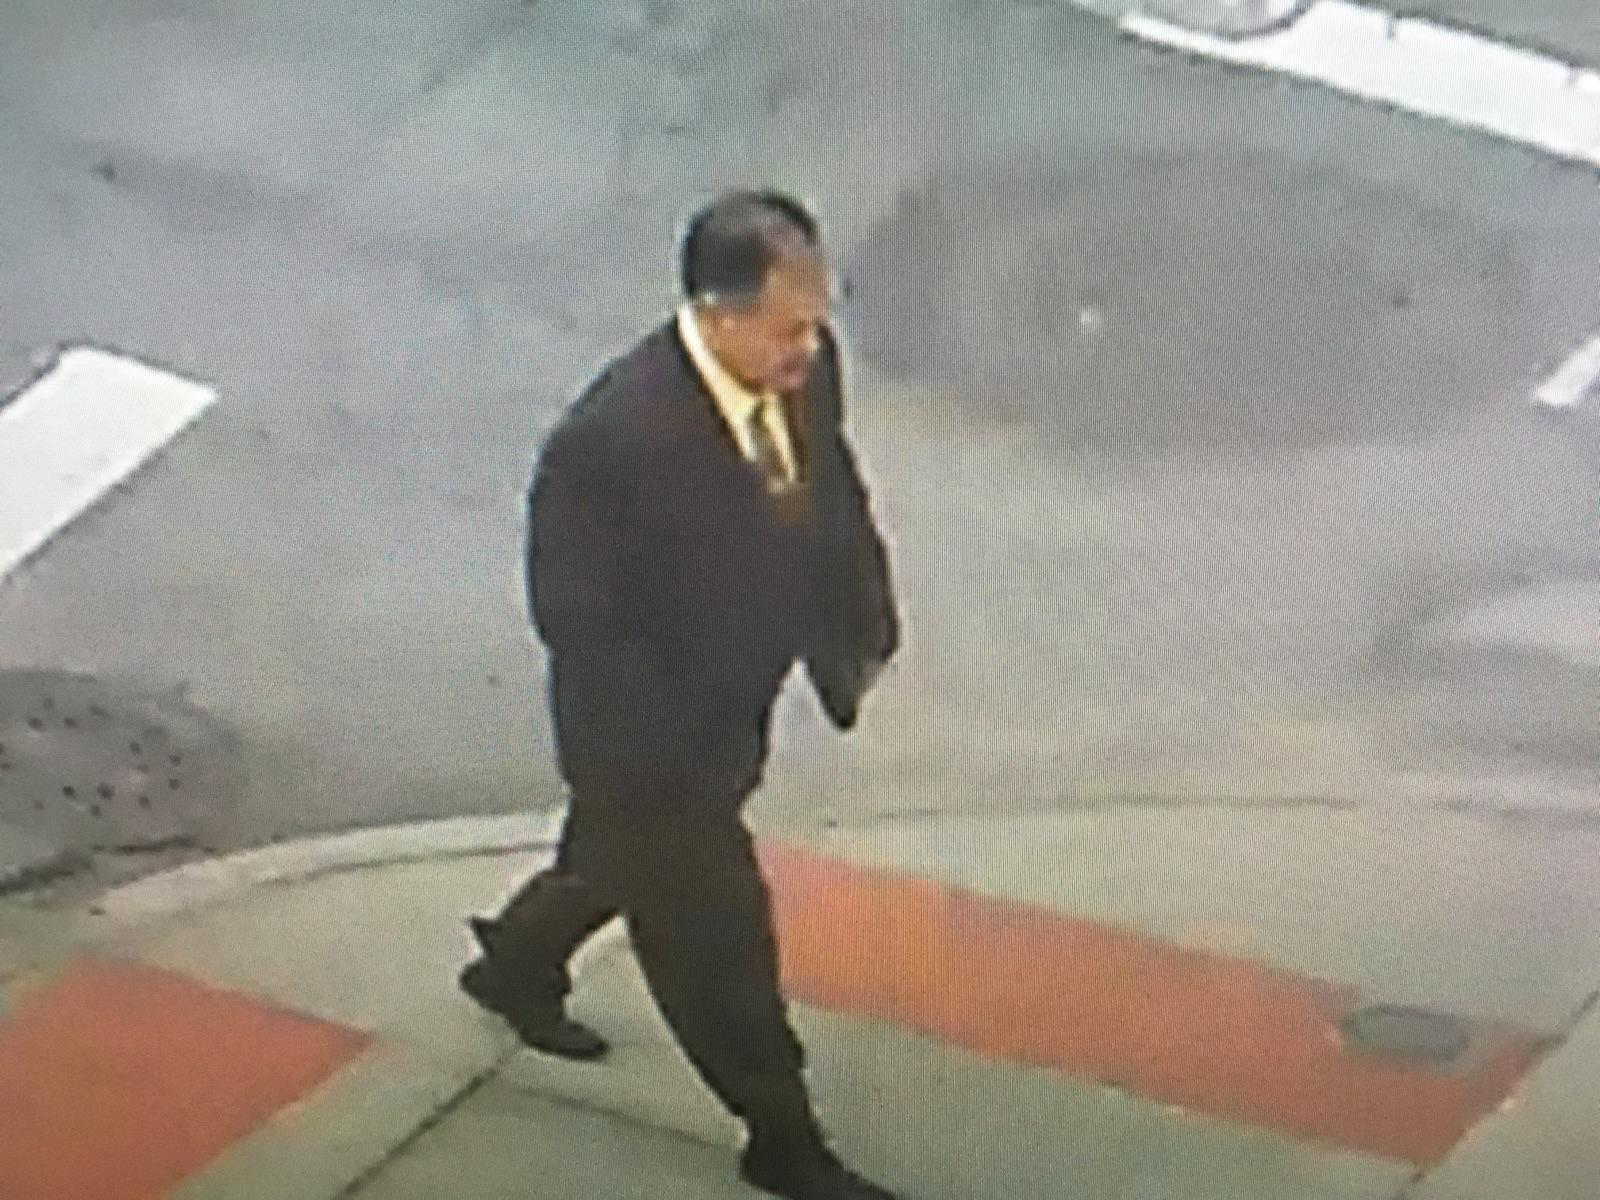 Person of interest wanted for questioning in Coleman A. Young Municipal Center security breach. (Photo: Detroit Police Department)